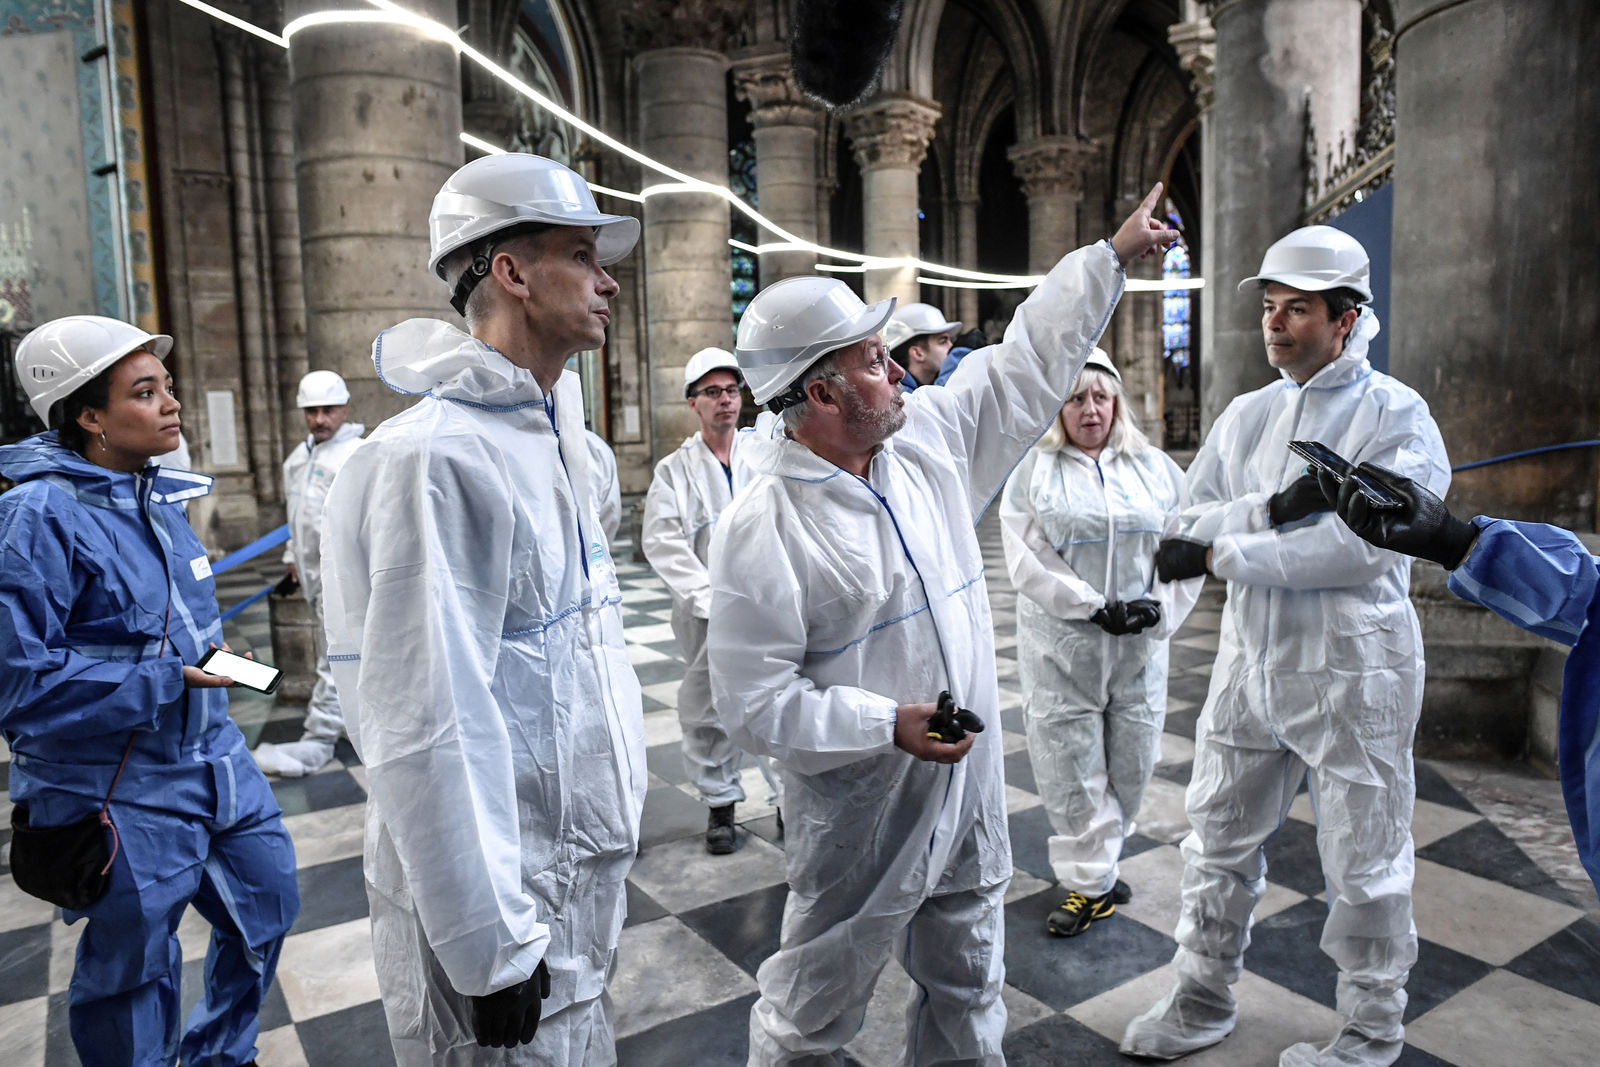 French Culture Minister Franck Riester, second left, listens to French chief architect of historical sites Philippe Villeneuve, center, as they visit the Notre-Dame de Paris Cathedral three months after a major fire Wednesday, July 17, 2019 in Paris. The chief architect of France's historic monuments says that three months after the April 15 fire that devastated Notre Dame Cathedral the site is still being secured. (Stephane de Sakutin/Pool via AP)